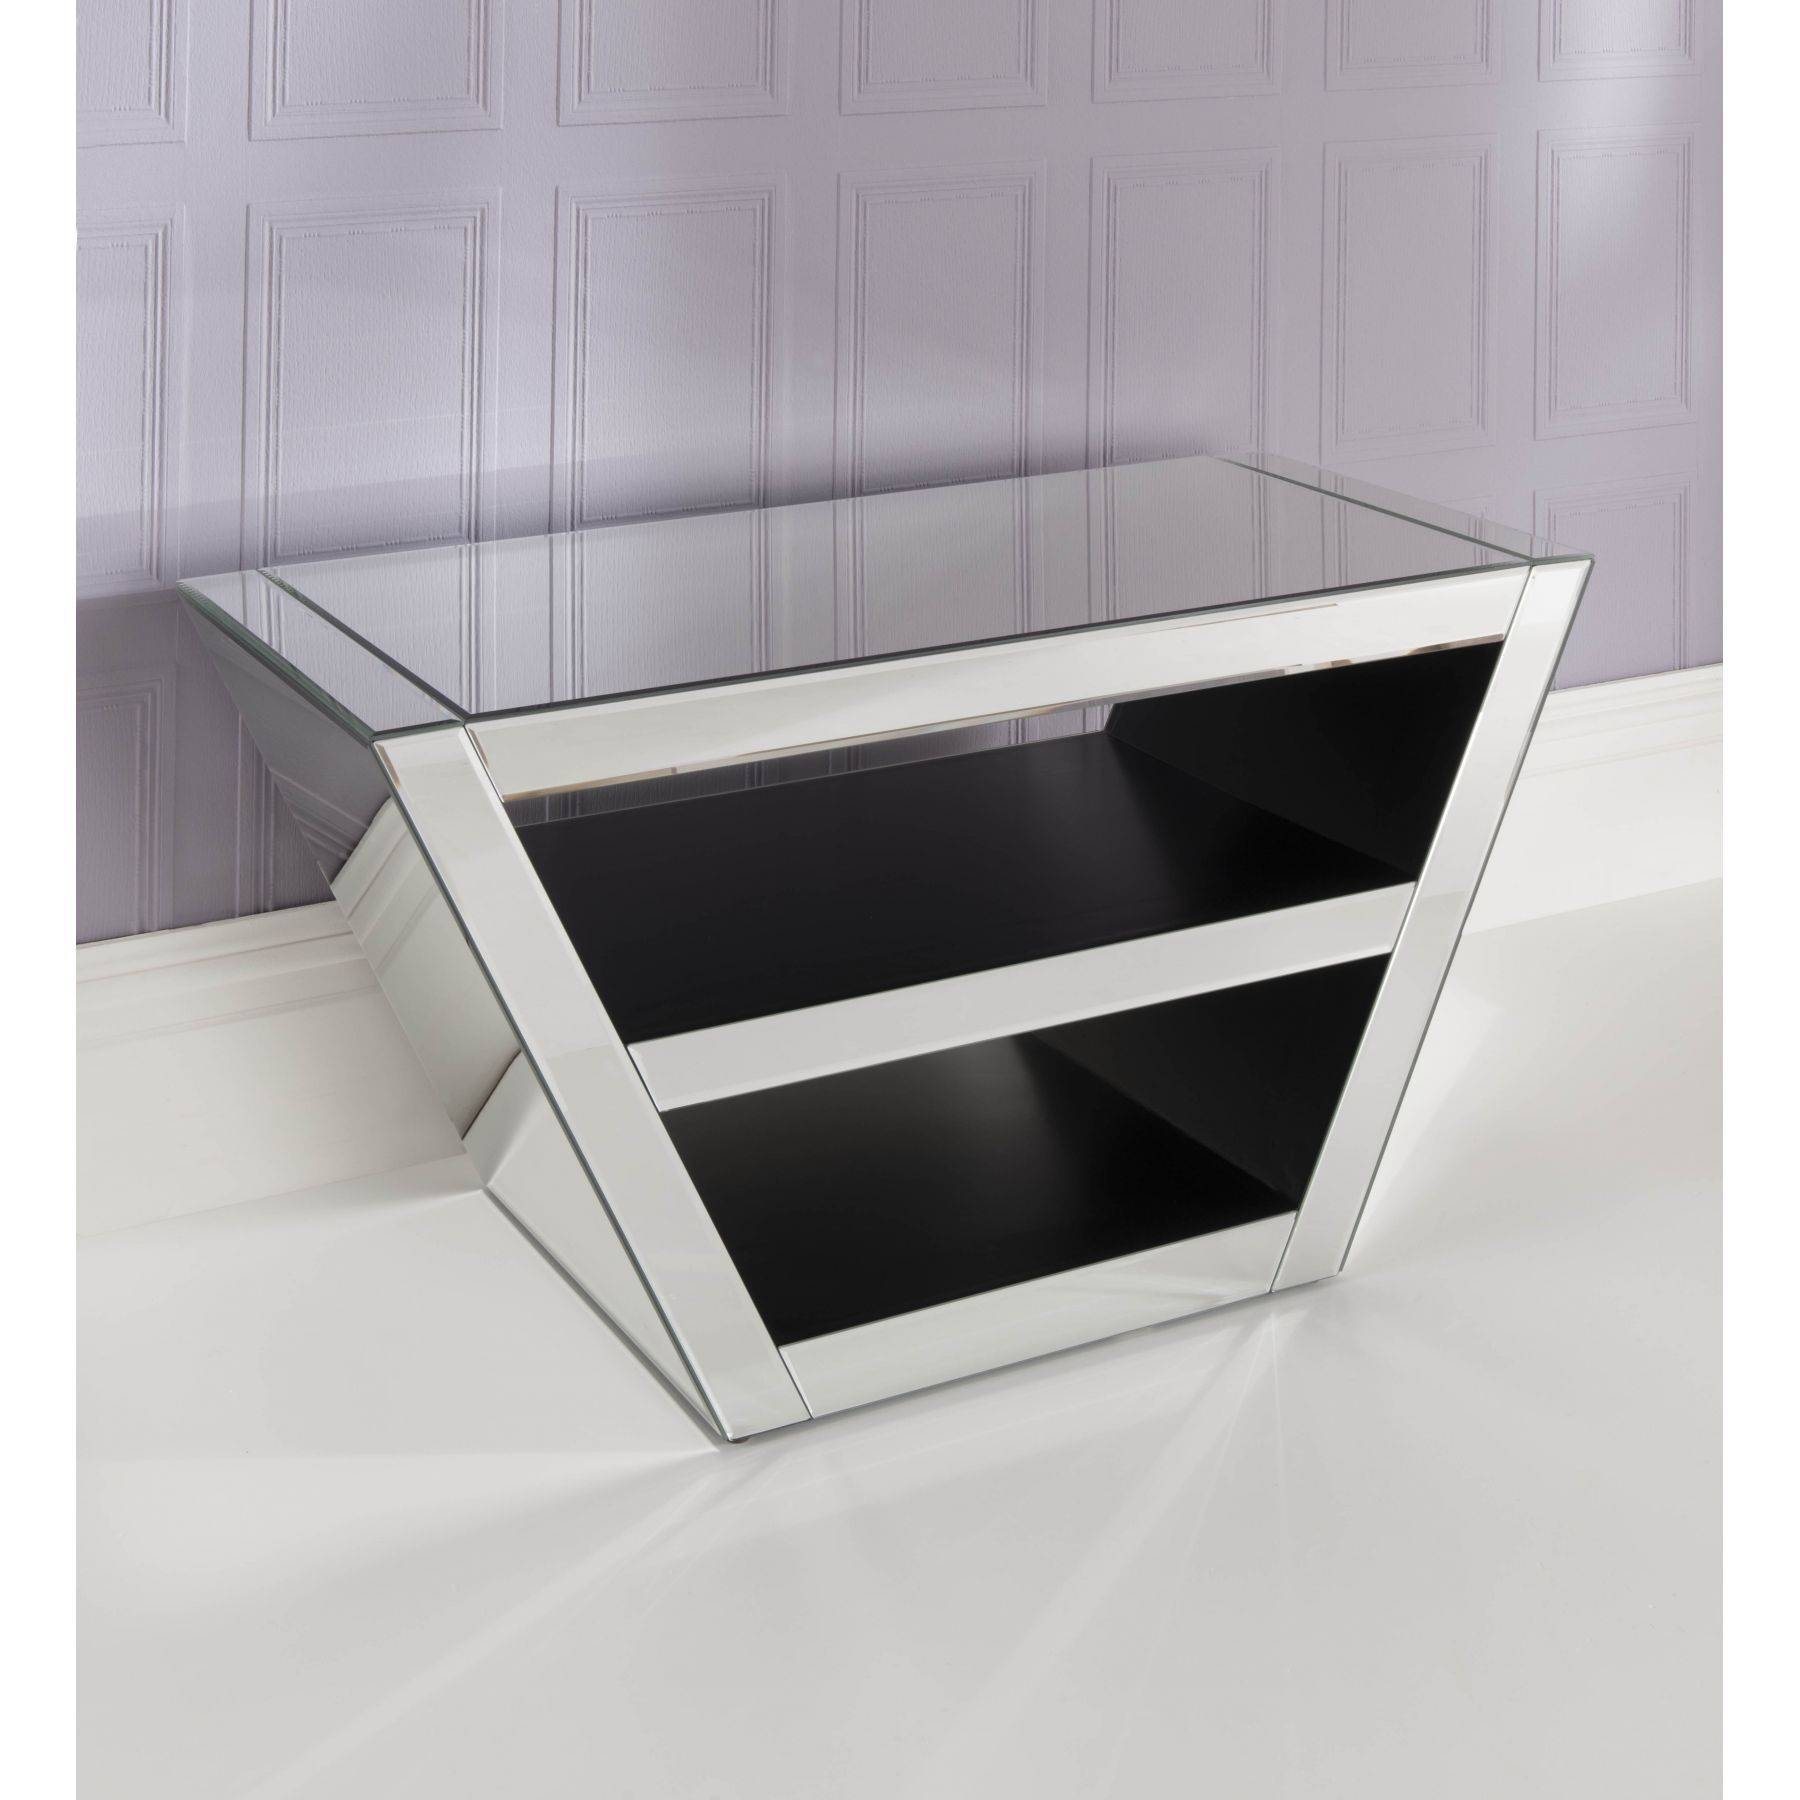 Mirrored Tv Cabinet | Venetian Glass Tv Stand | Homesdirect365 For Tv Cabinets (View 10 of 15)